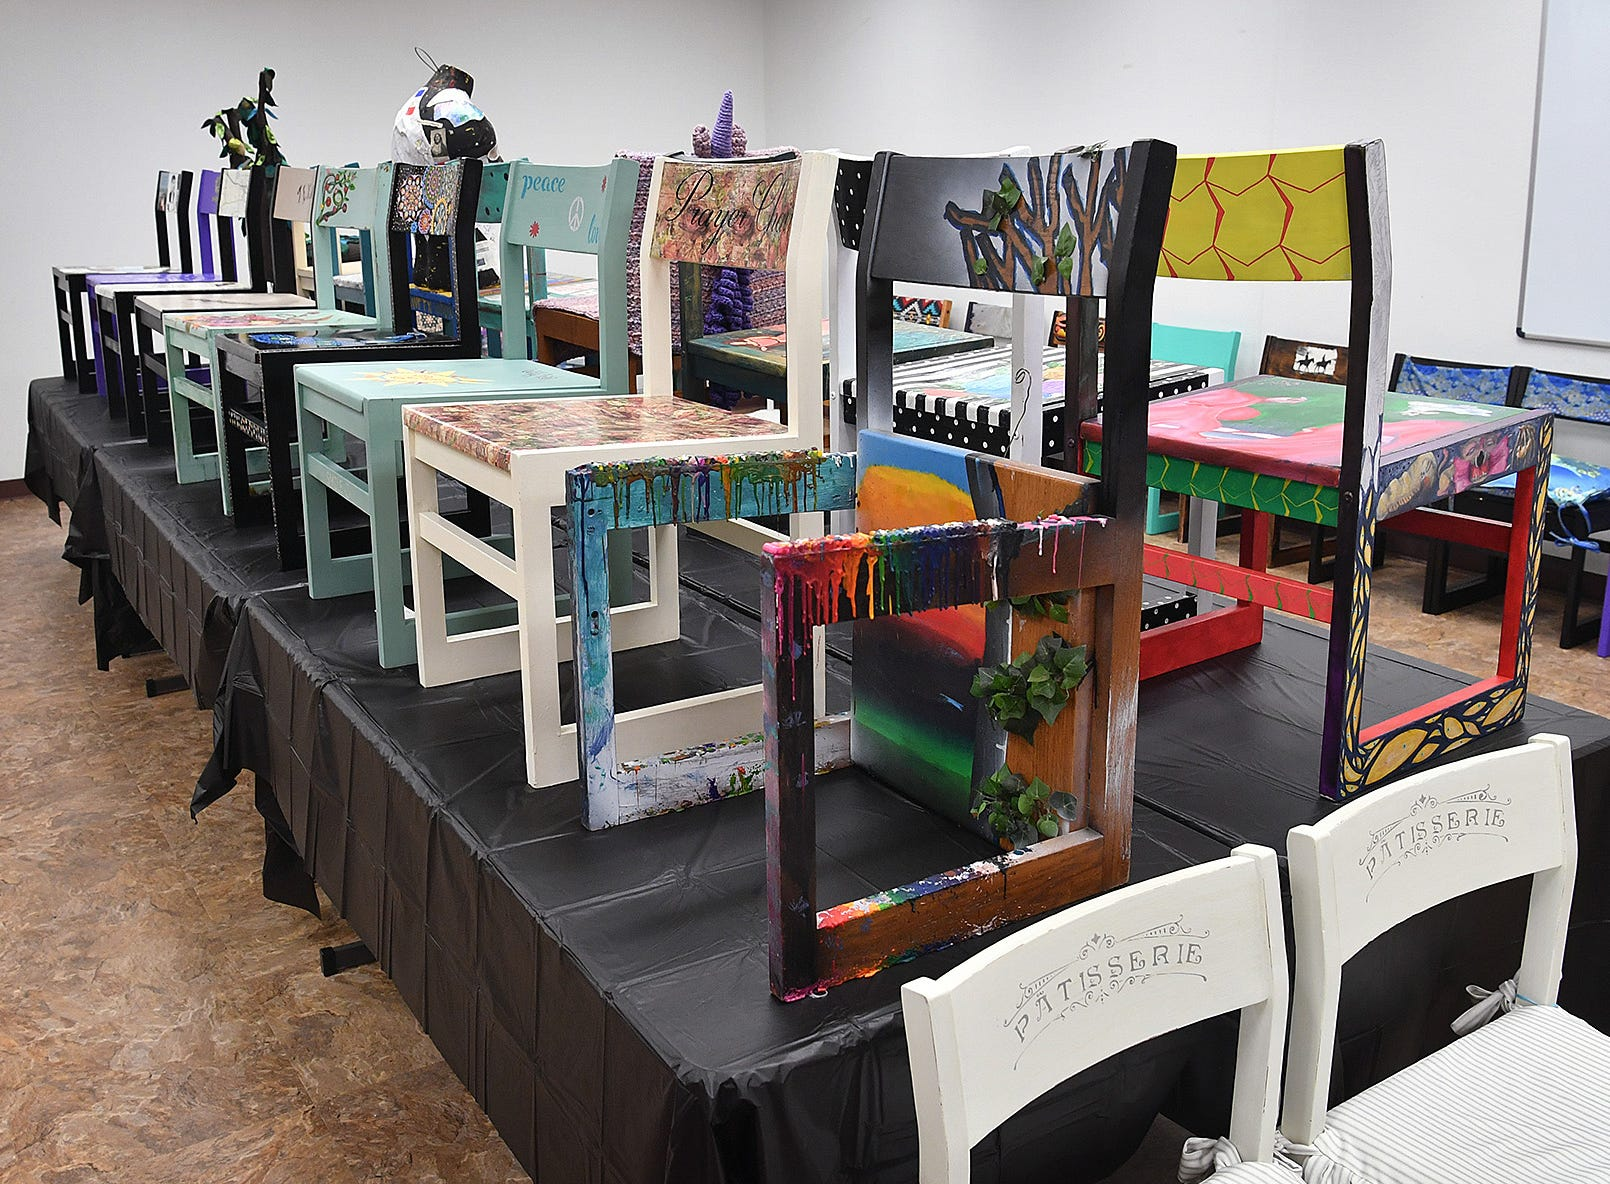 Art chairs for the Wichhita Falls Public Library's Chair-ity Art Auction include paint, fabrics, decoupage, melted crayons and more.